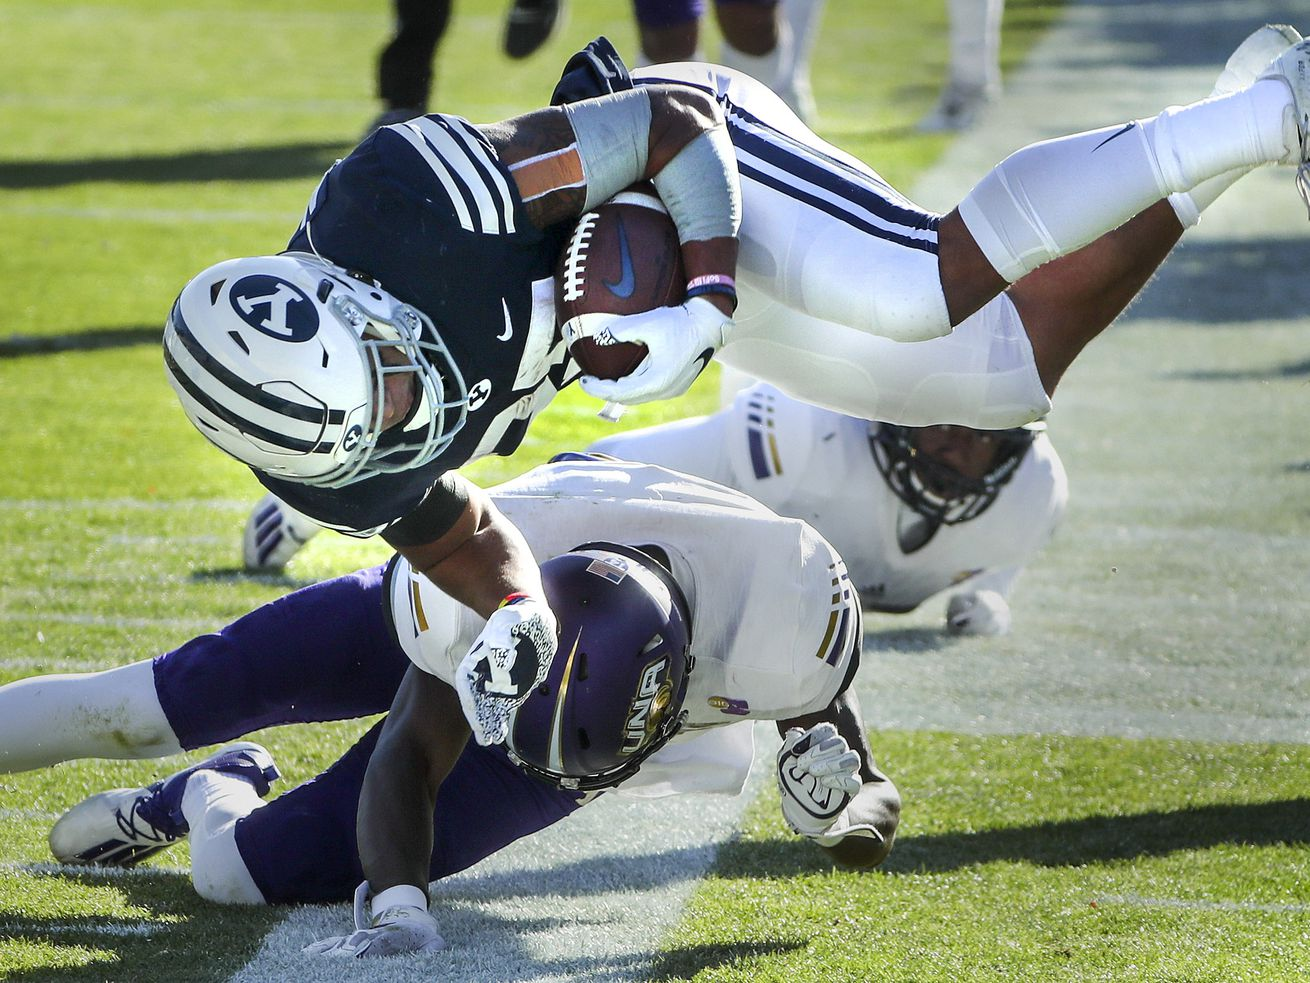 Brigham Young Cougars running back Tyler Allgeier (25) gets flipped into the air by a North Alabama defender as he dives for the end zone during a game in Provo on Saturday, Nov. 21, 2020.